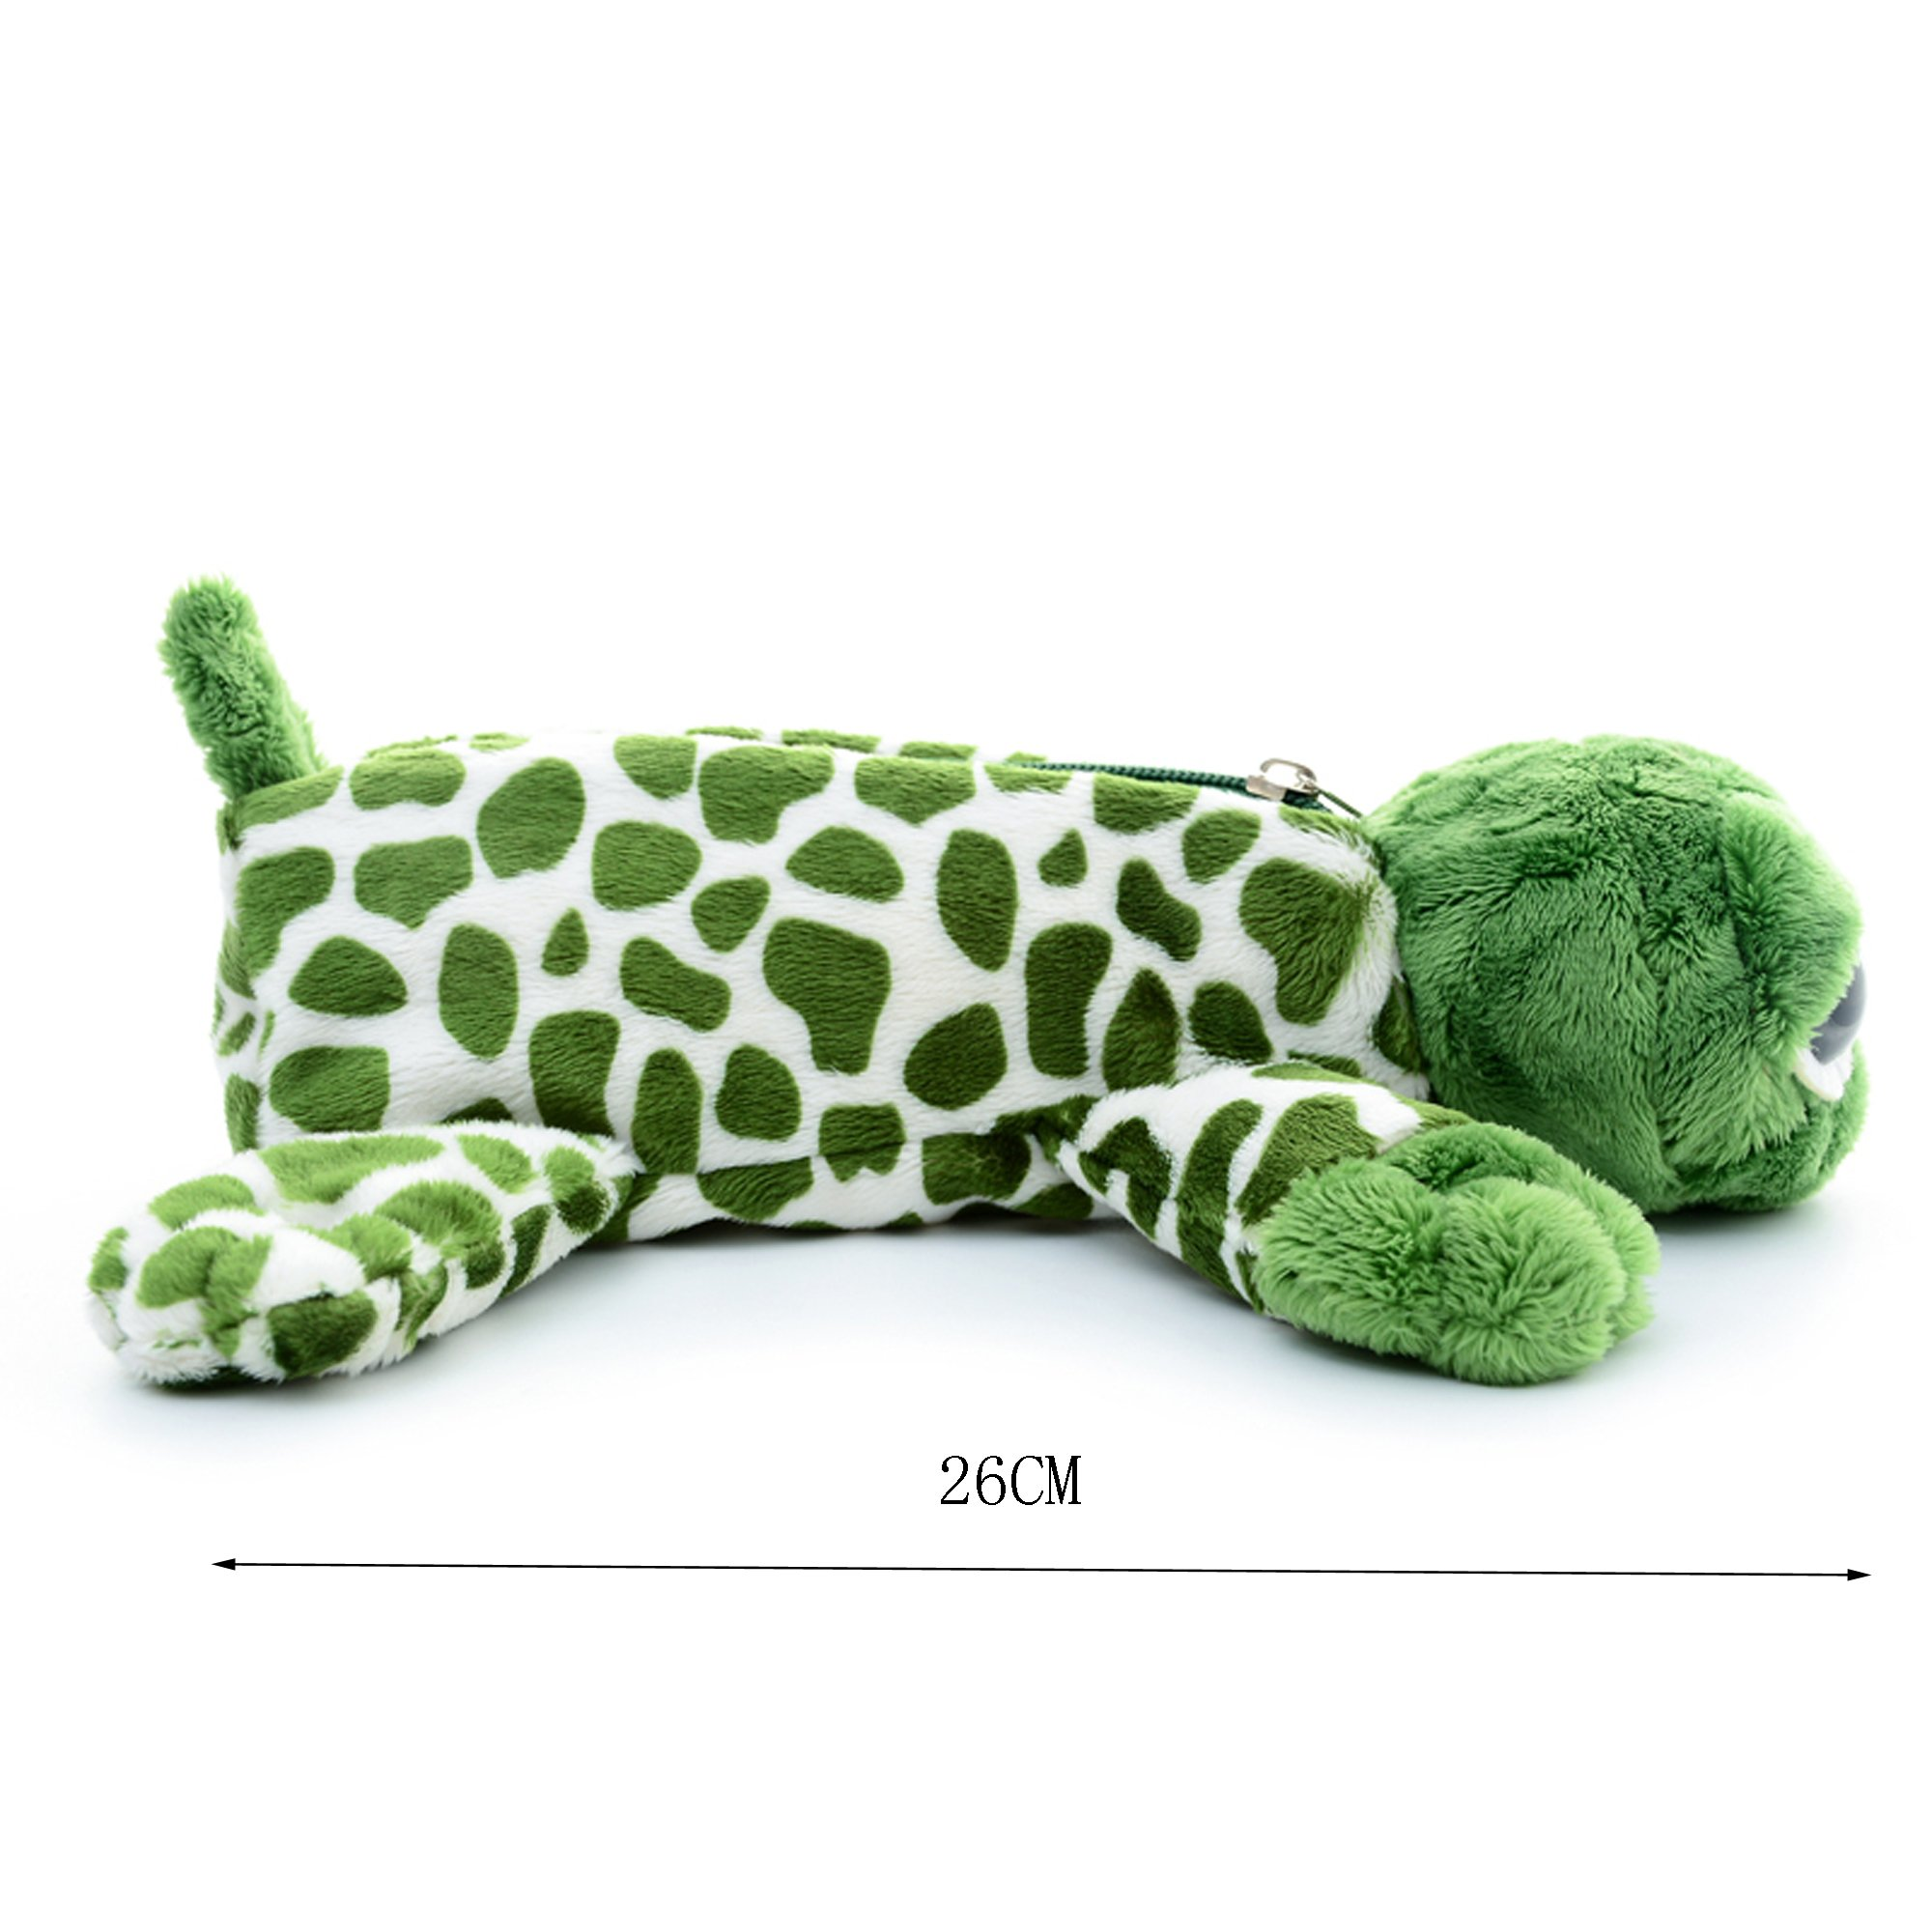 Cartoon Animal Plush School Pencil Bag Pen Case Comestic Makeup Pouch 11'' (turtle) by Gloveleya (Image #3)